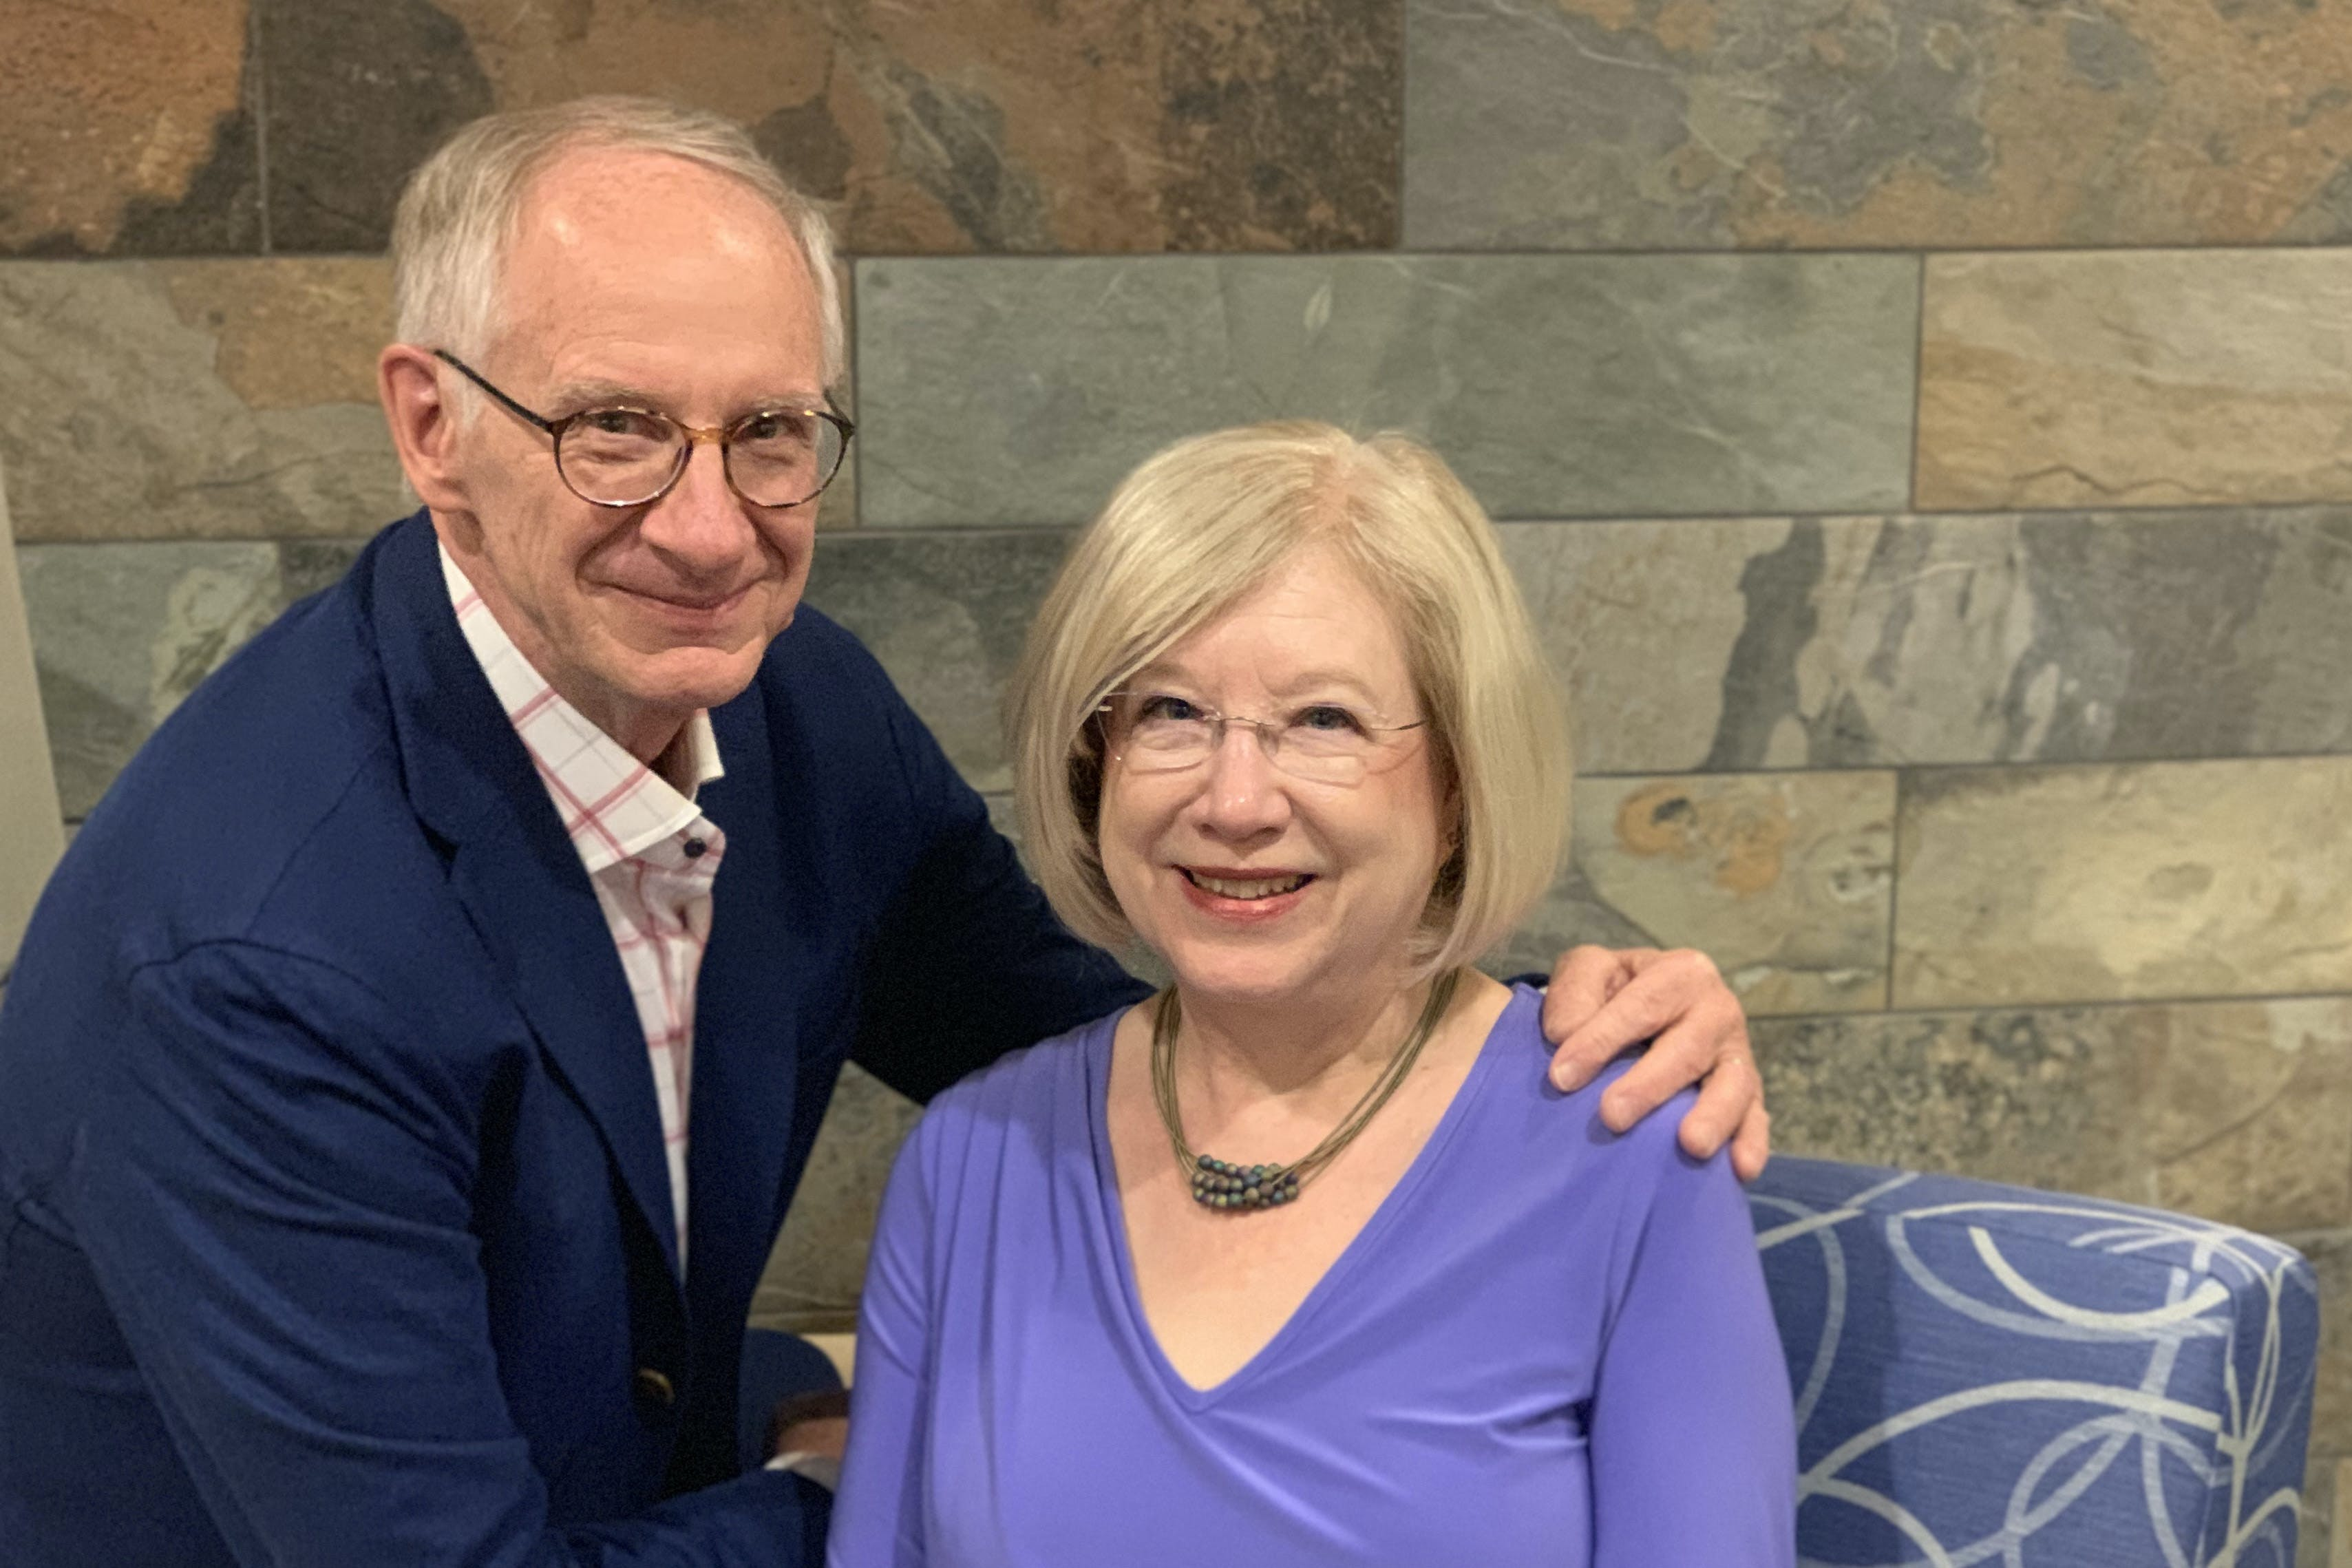 Bethel donors Ron and Linda Dischinger